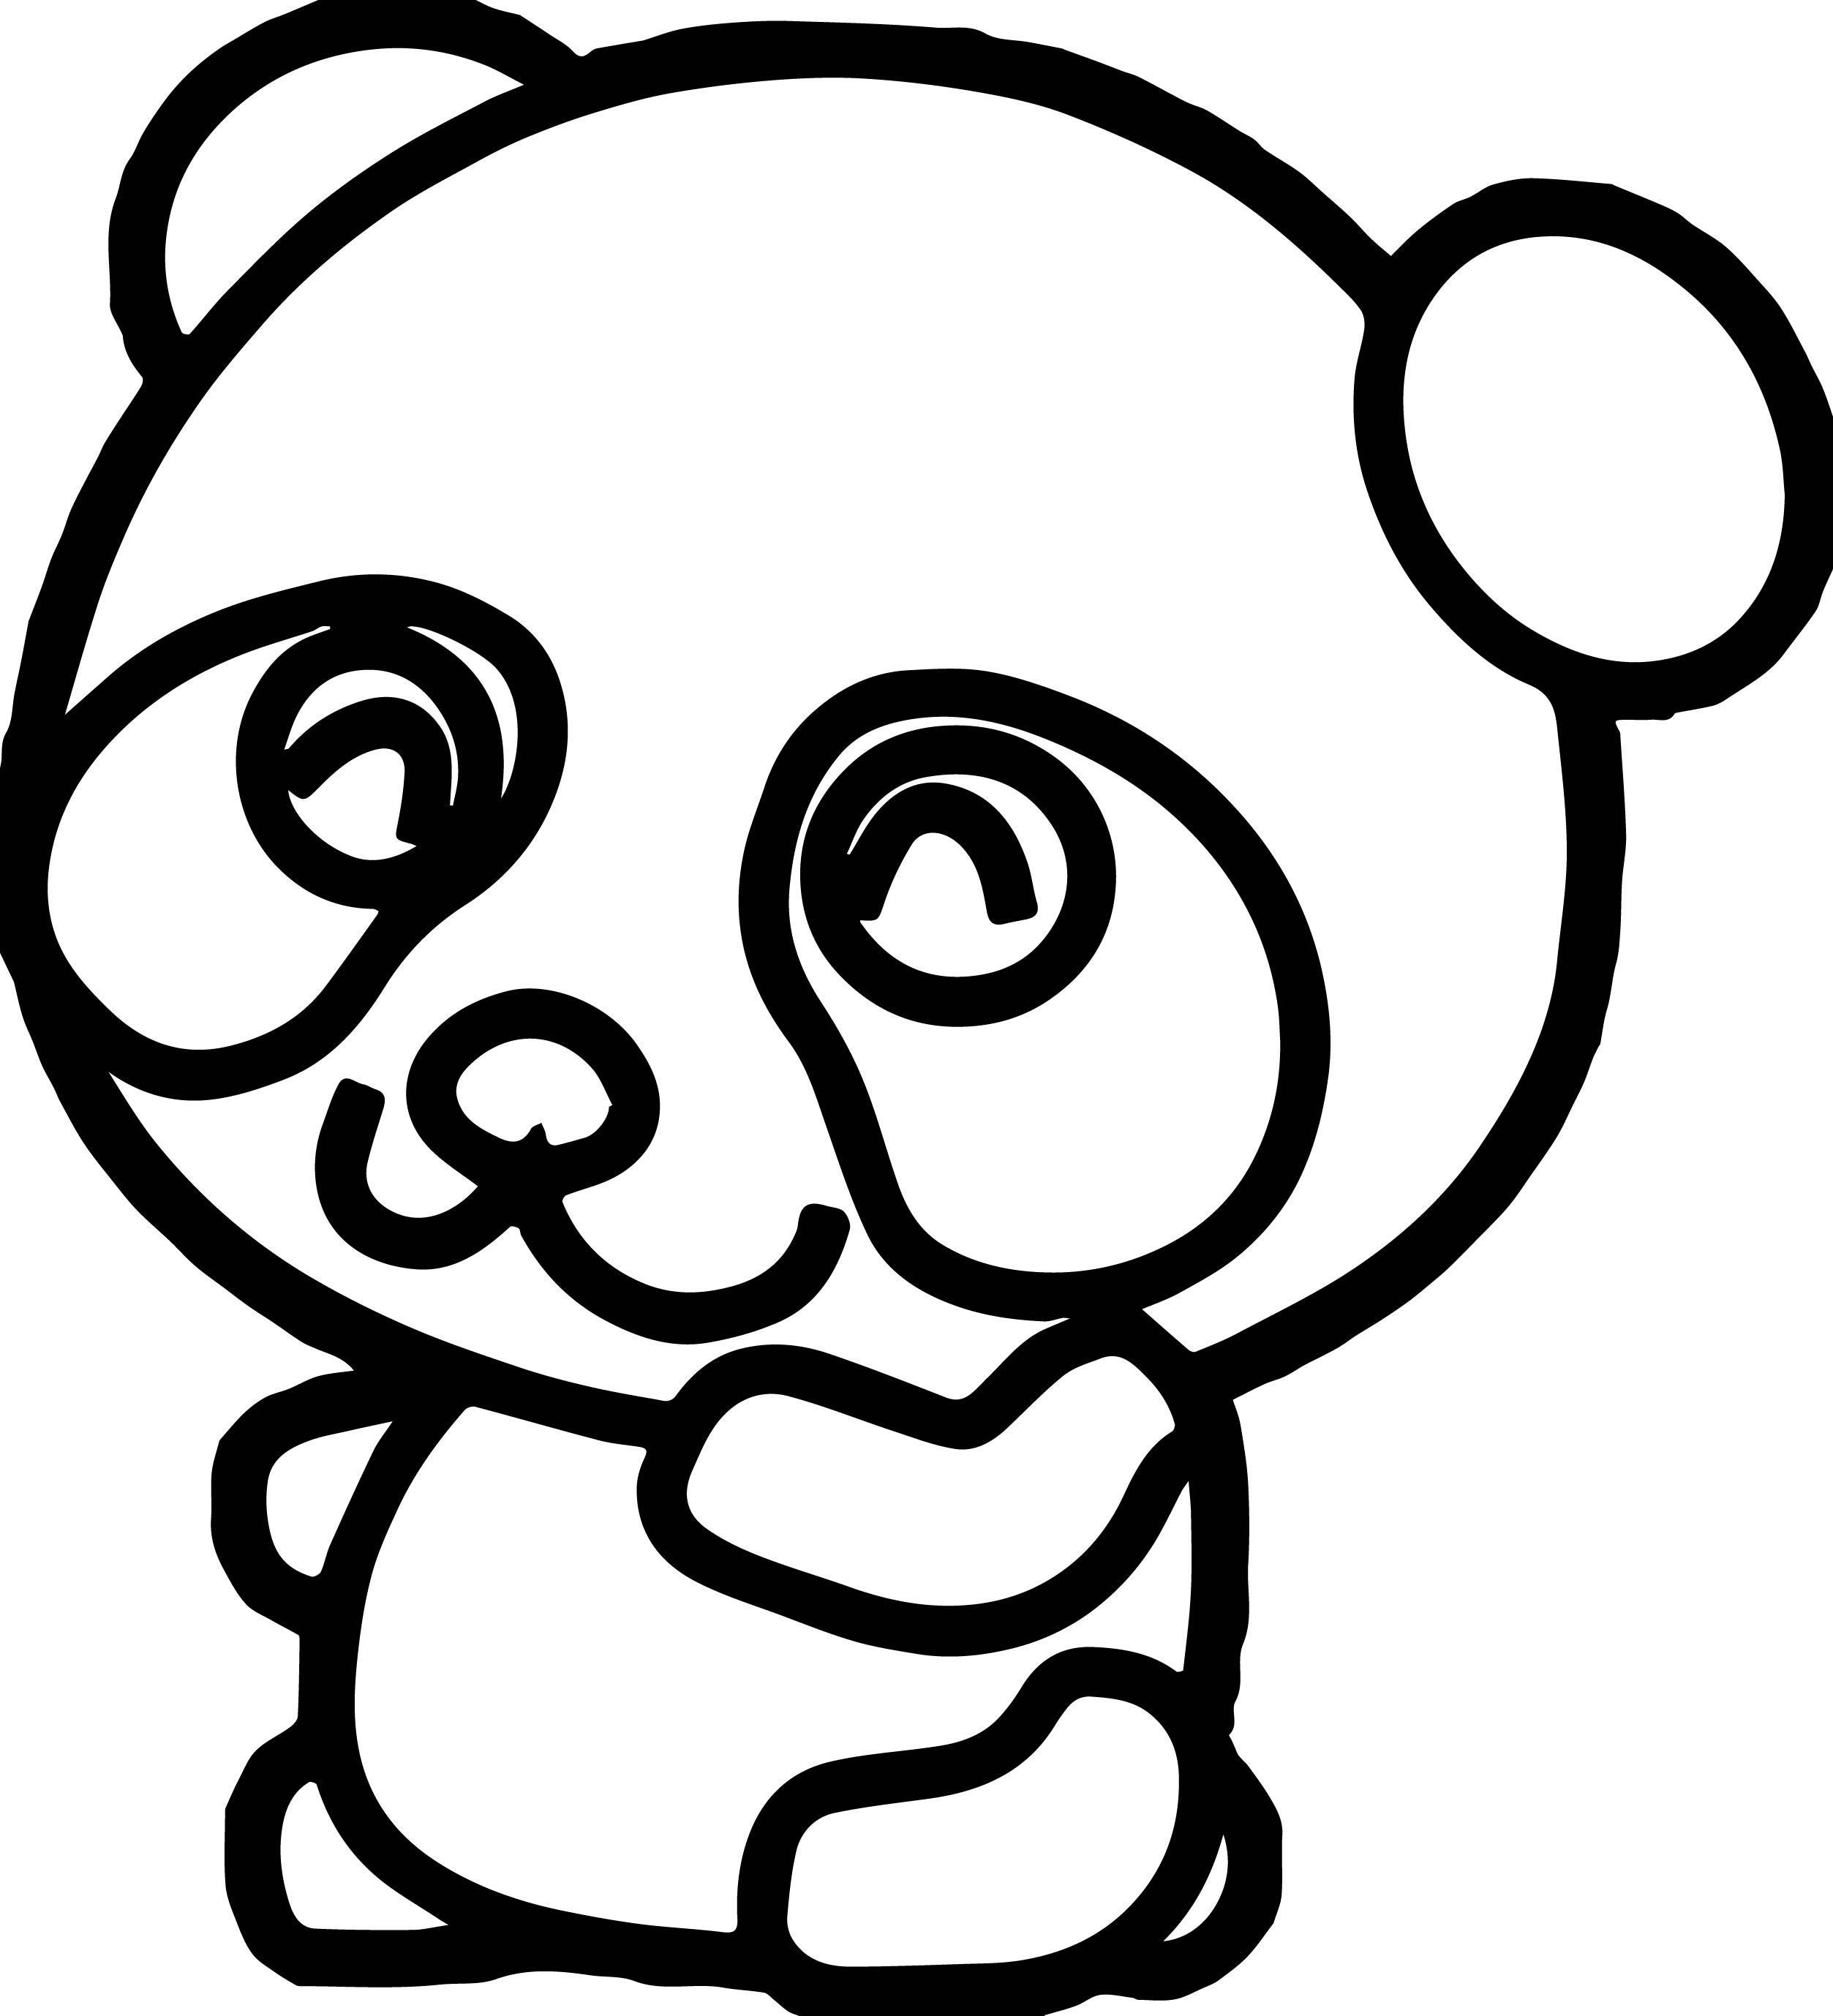 coloring sheet eyes eye coloring page free download on clipartmag eyes coloring sheet